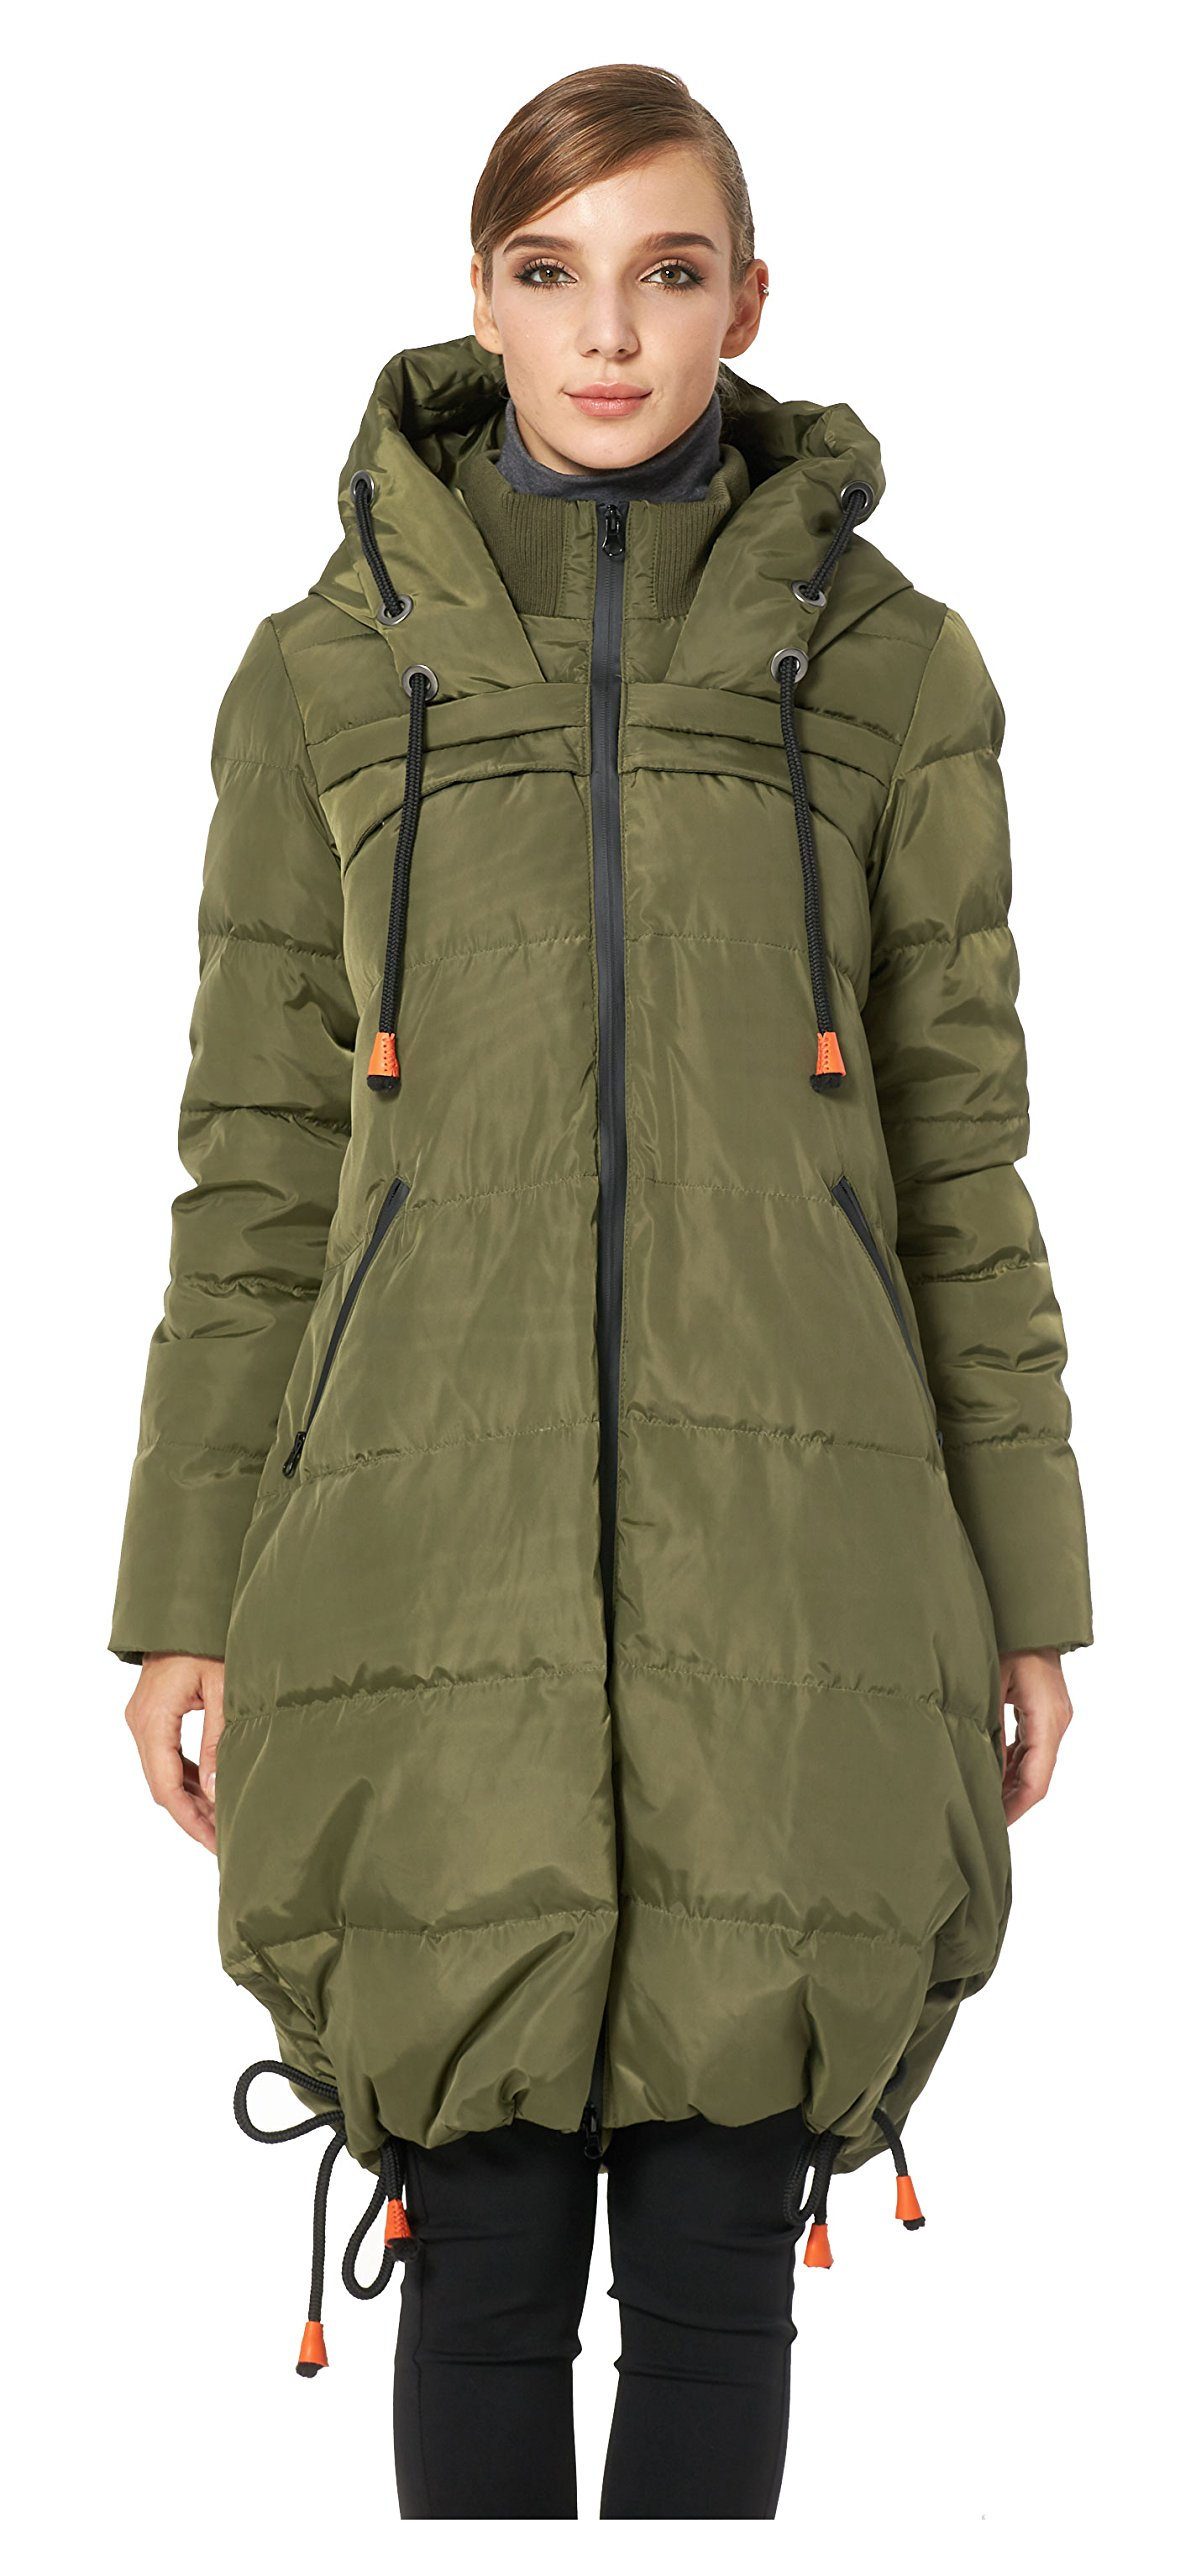 Orolay Women's Thickened Contrast Color Drawstring Down Jacket Hooded ArmyGreen S by Orolay (Image #3)